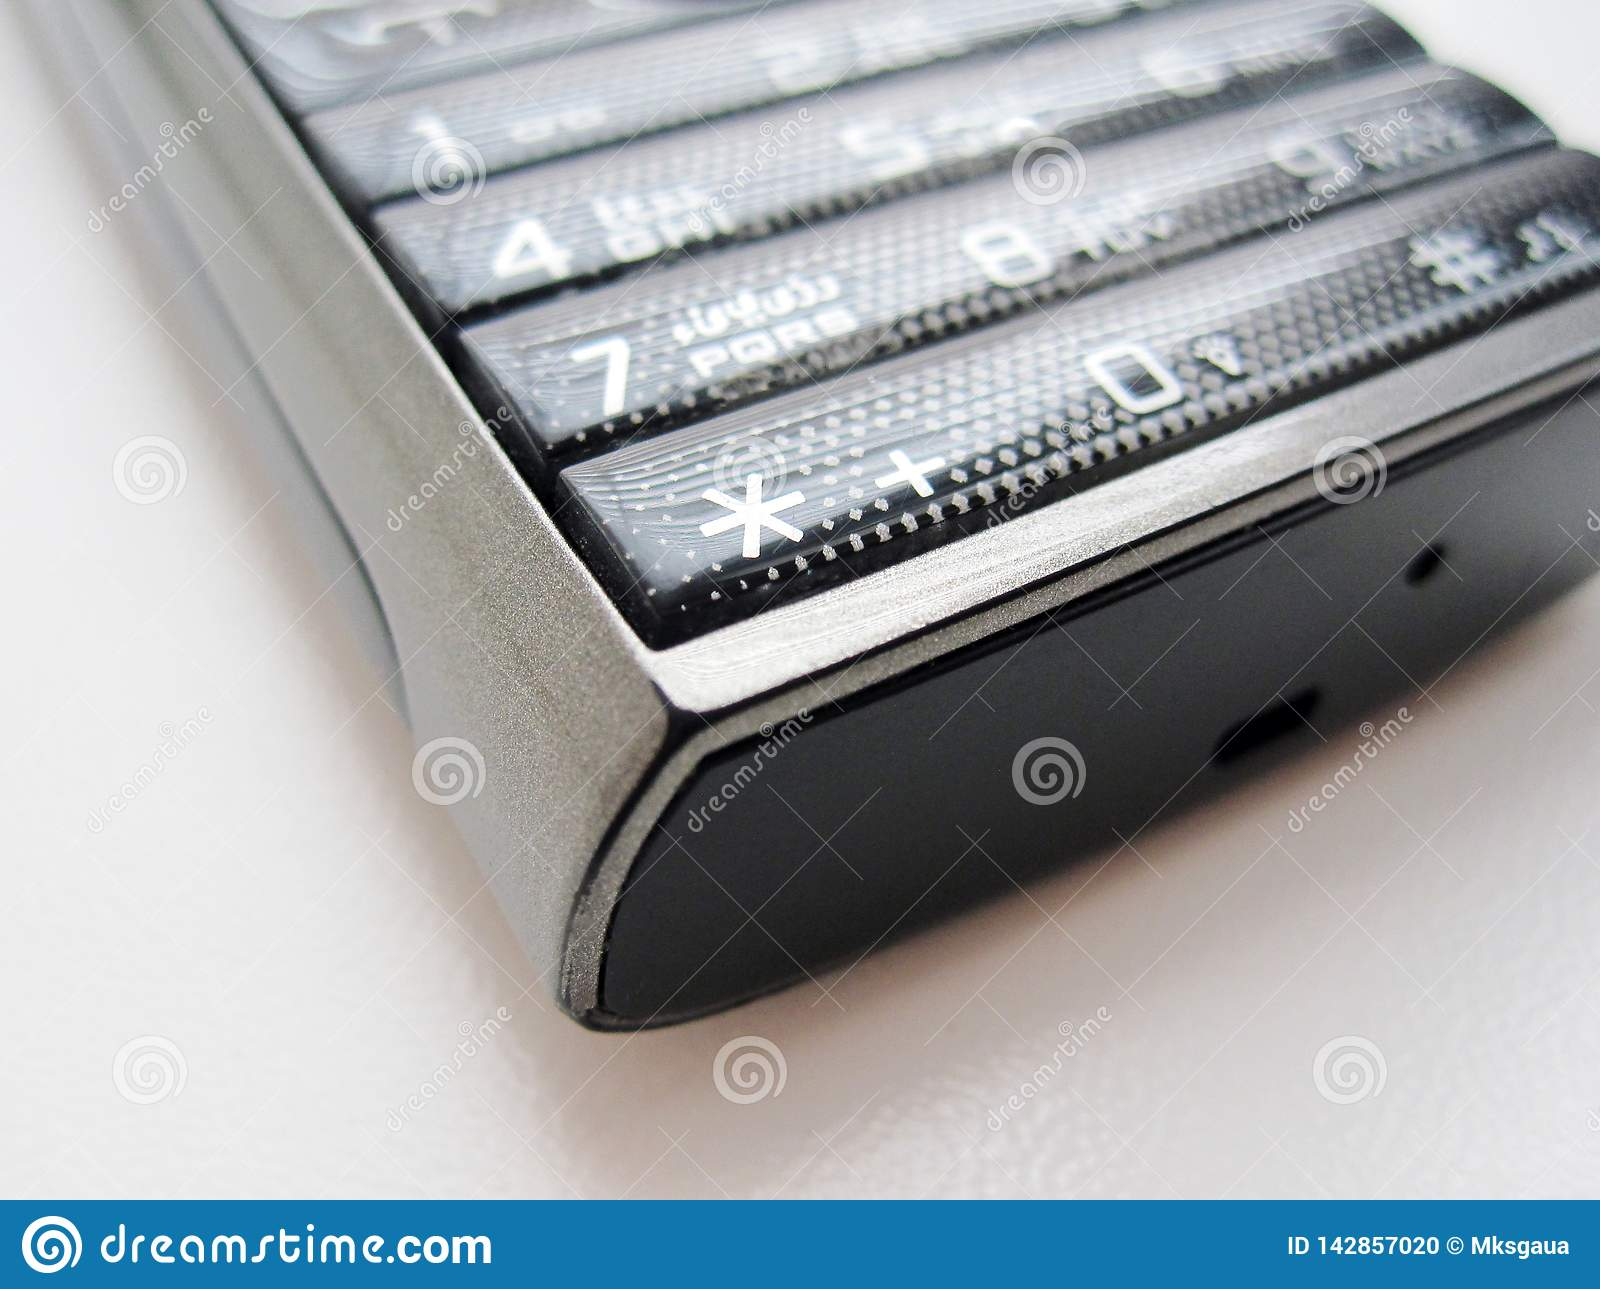 Keyboard phone on a white background